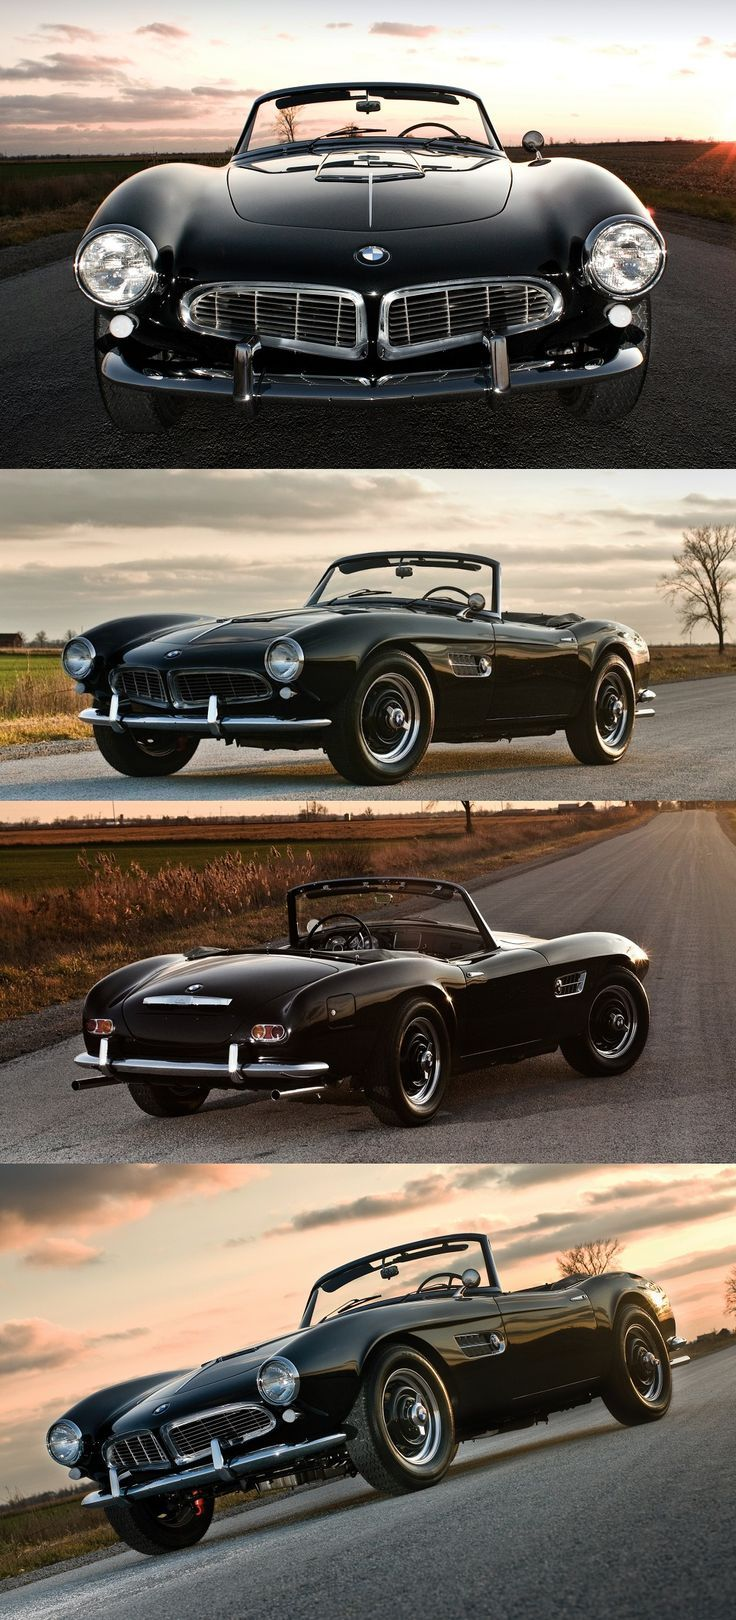 The Vintage BMW 507 Roadster History The BMW 507 2 doors roadster is a very spec – Jerry